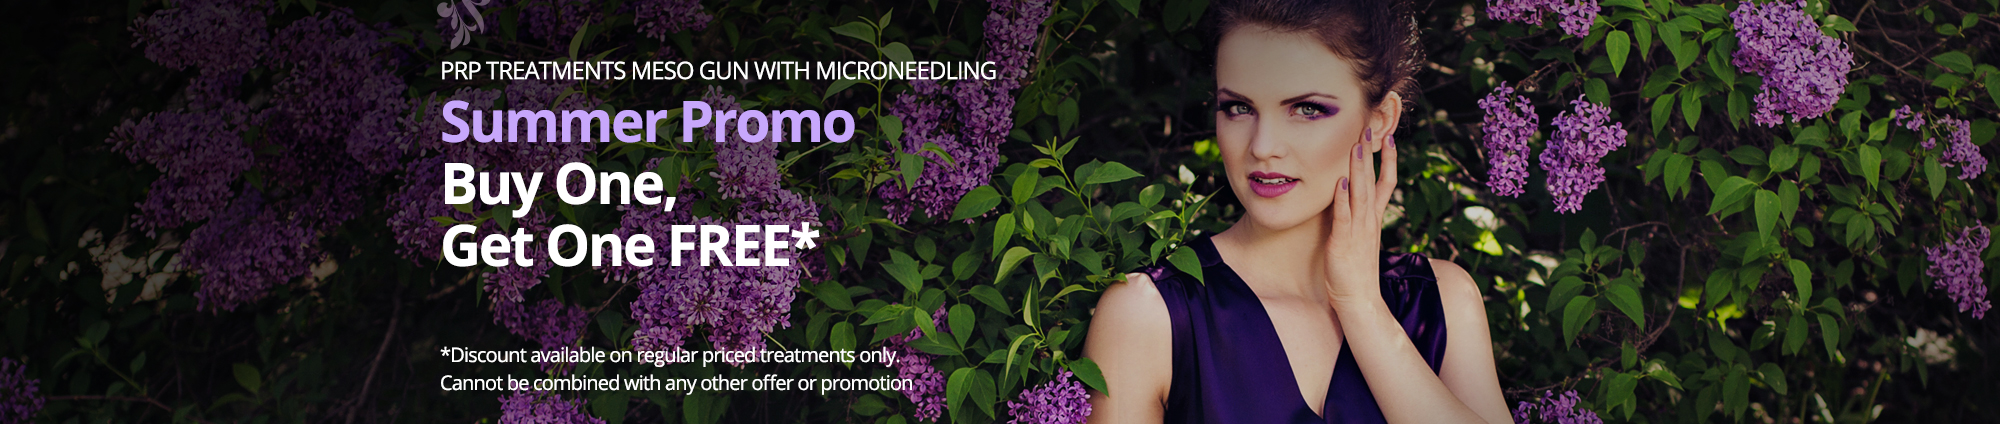 PRP Treatments Meso Gun with Microneedling